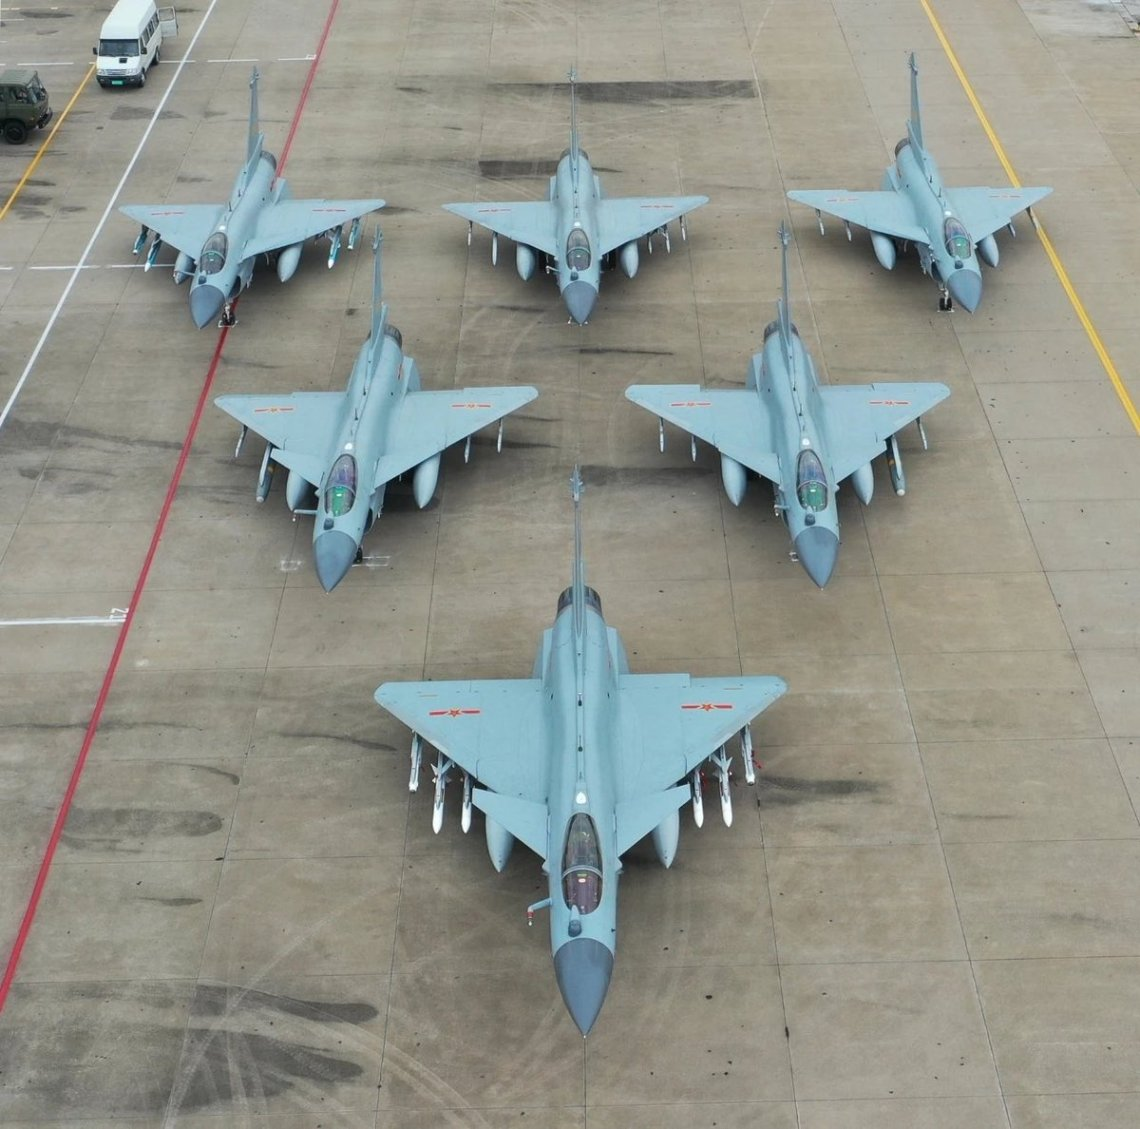 People's Liberation Army Air Force (PLAAF) Chengdu J-10C Multirole Fighters